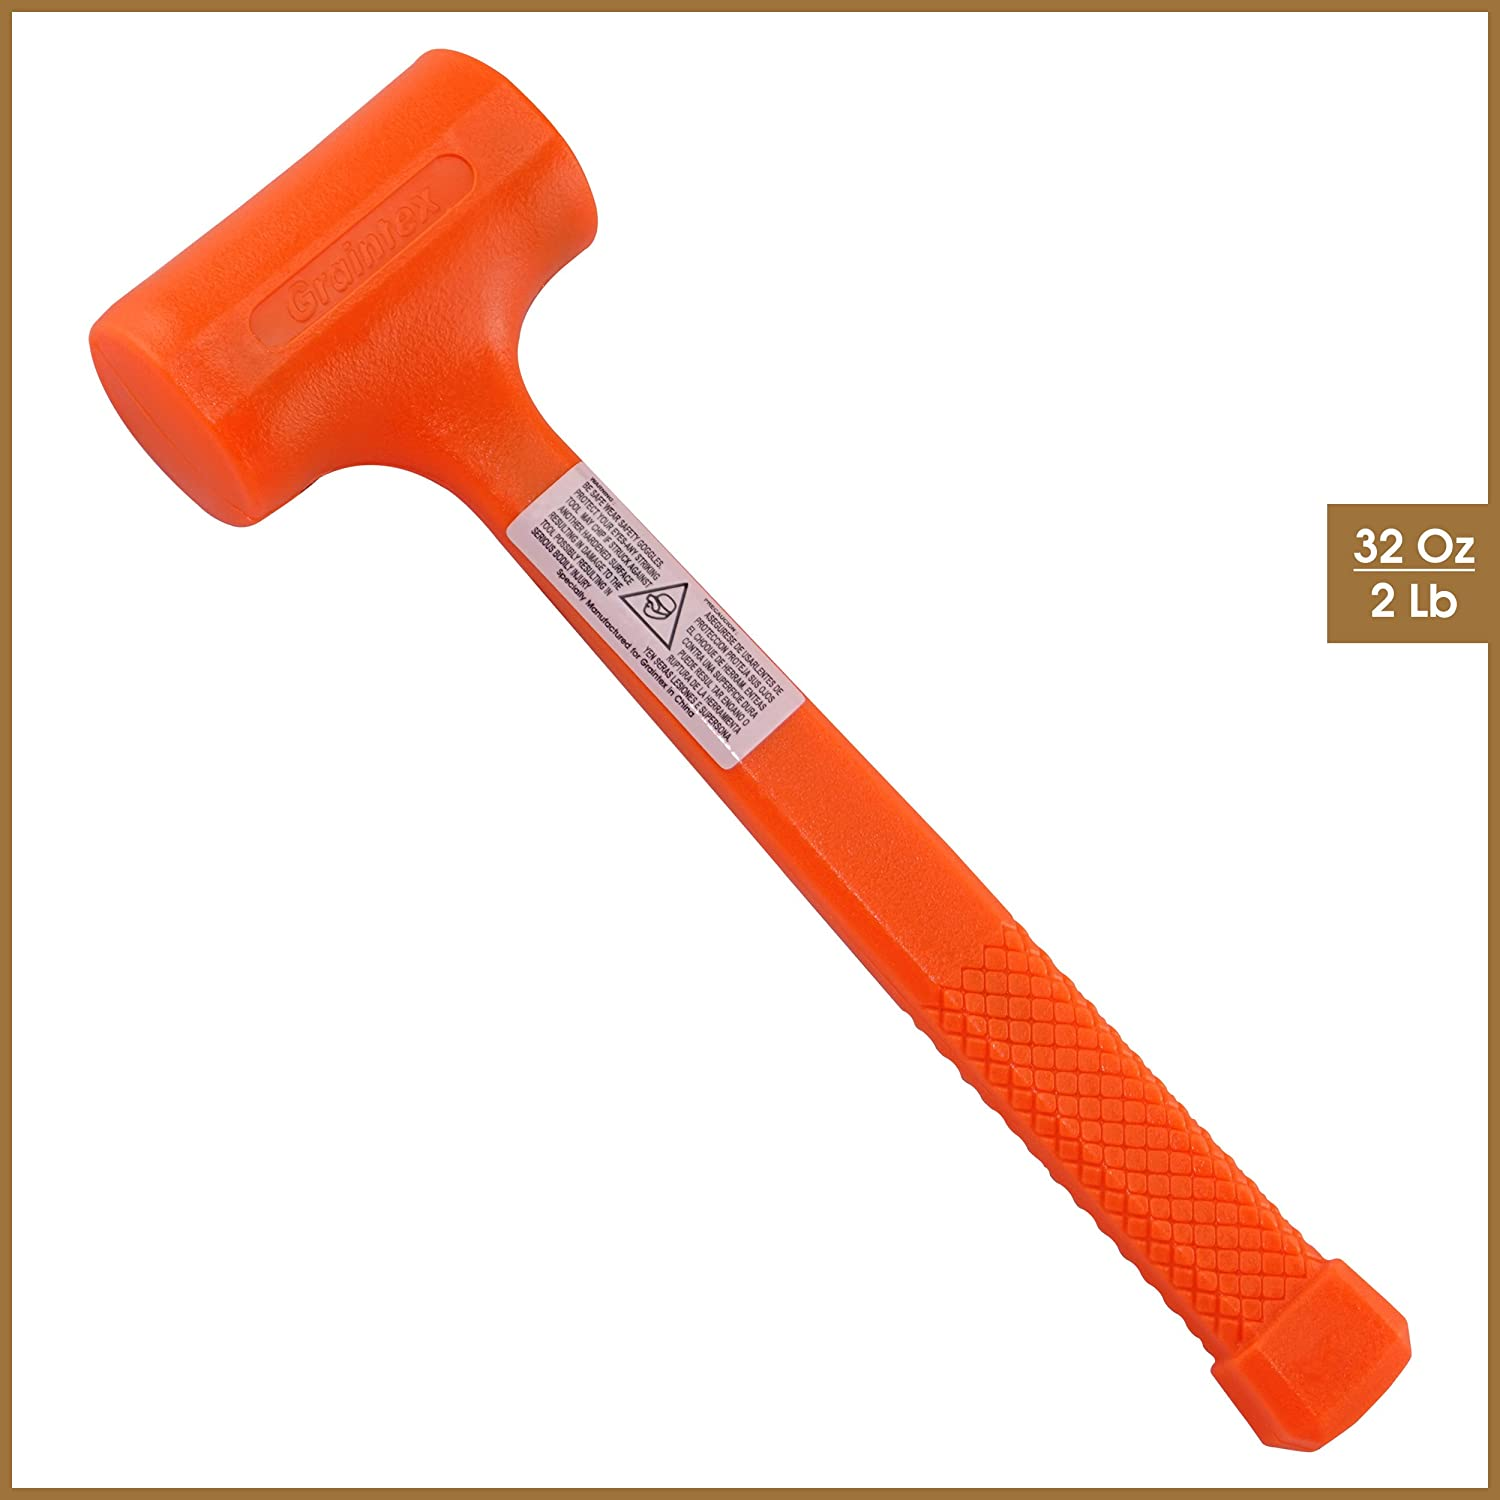 Graintex Db1456 2 0 Lb Dead Blow Mallet Amazon Com Handle is reinforced with solid steel shaft for greater strength and safety. graintex db1456 2 0 lb dead blow mallet